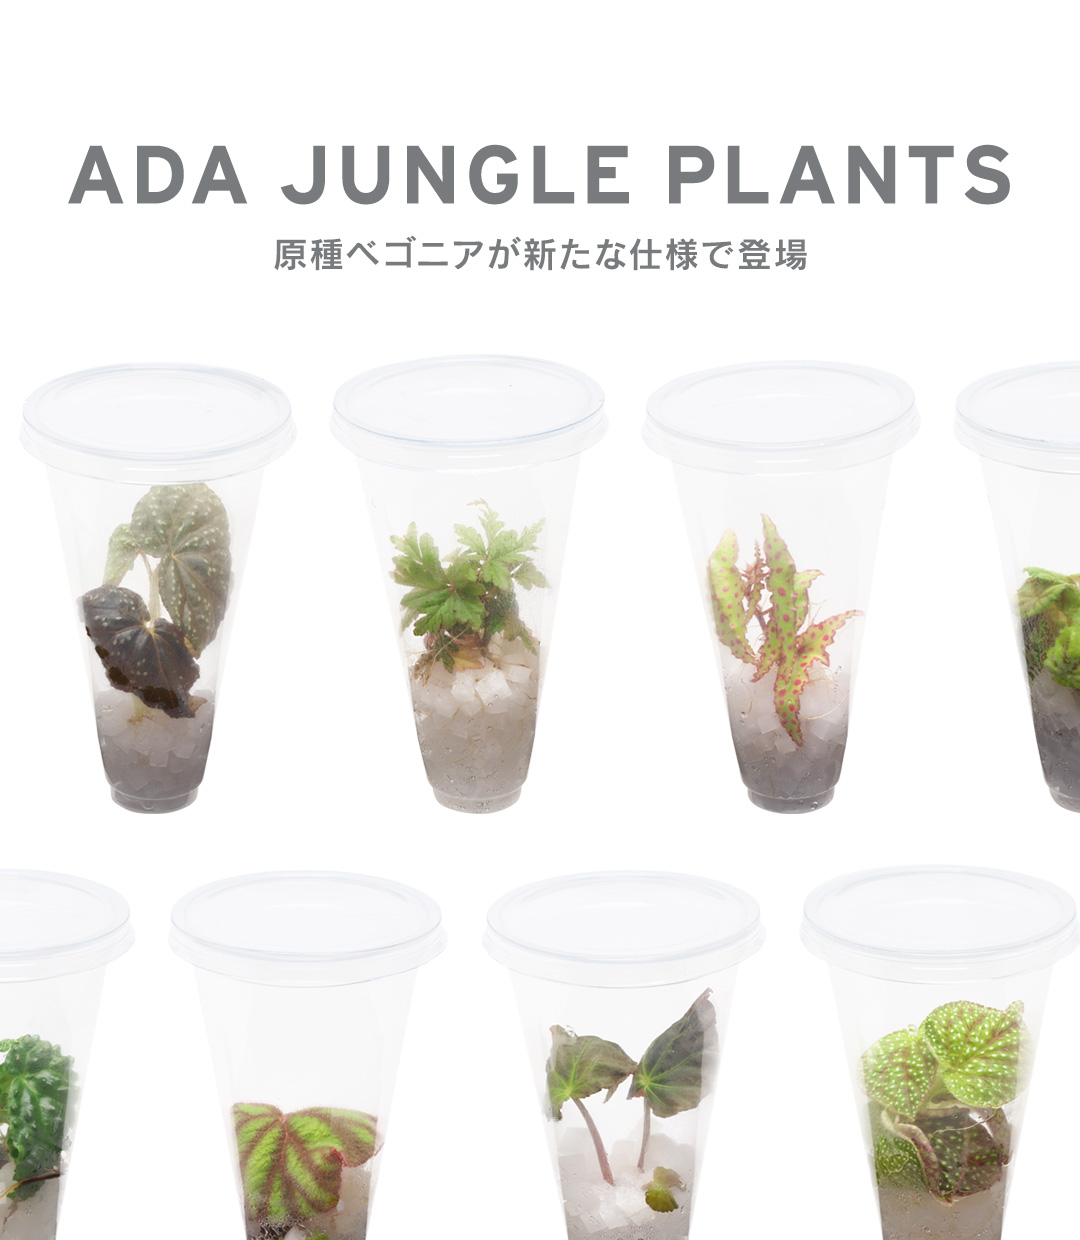 ADA JUNGLE PLANTS – Progenitor Begonia are now available in new style –